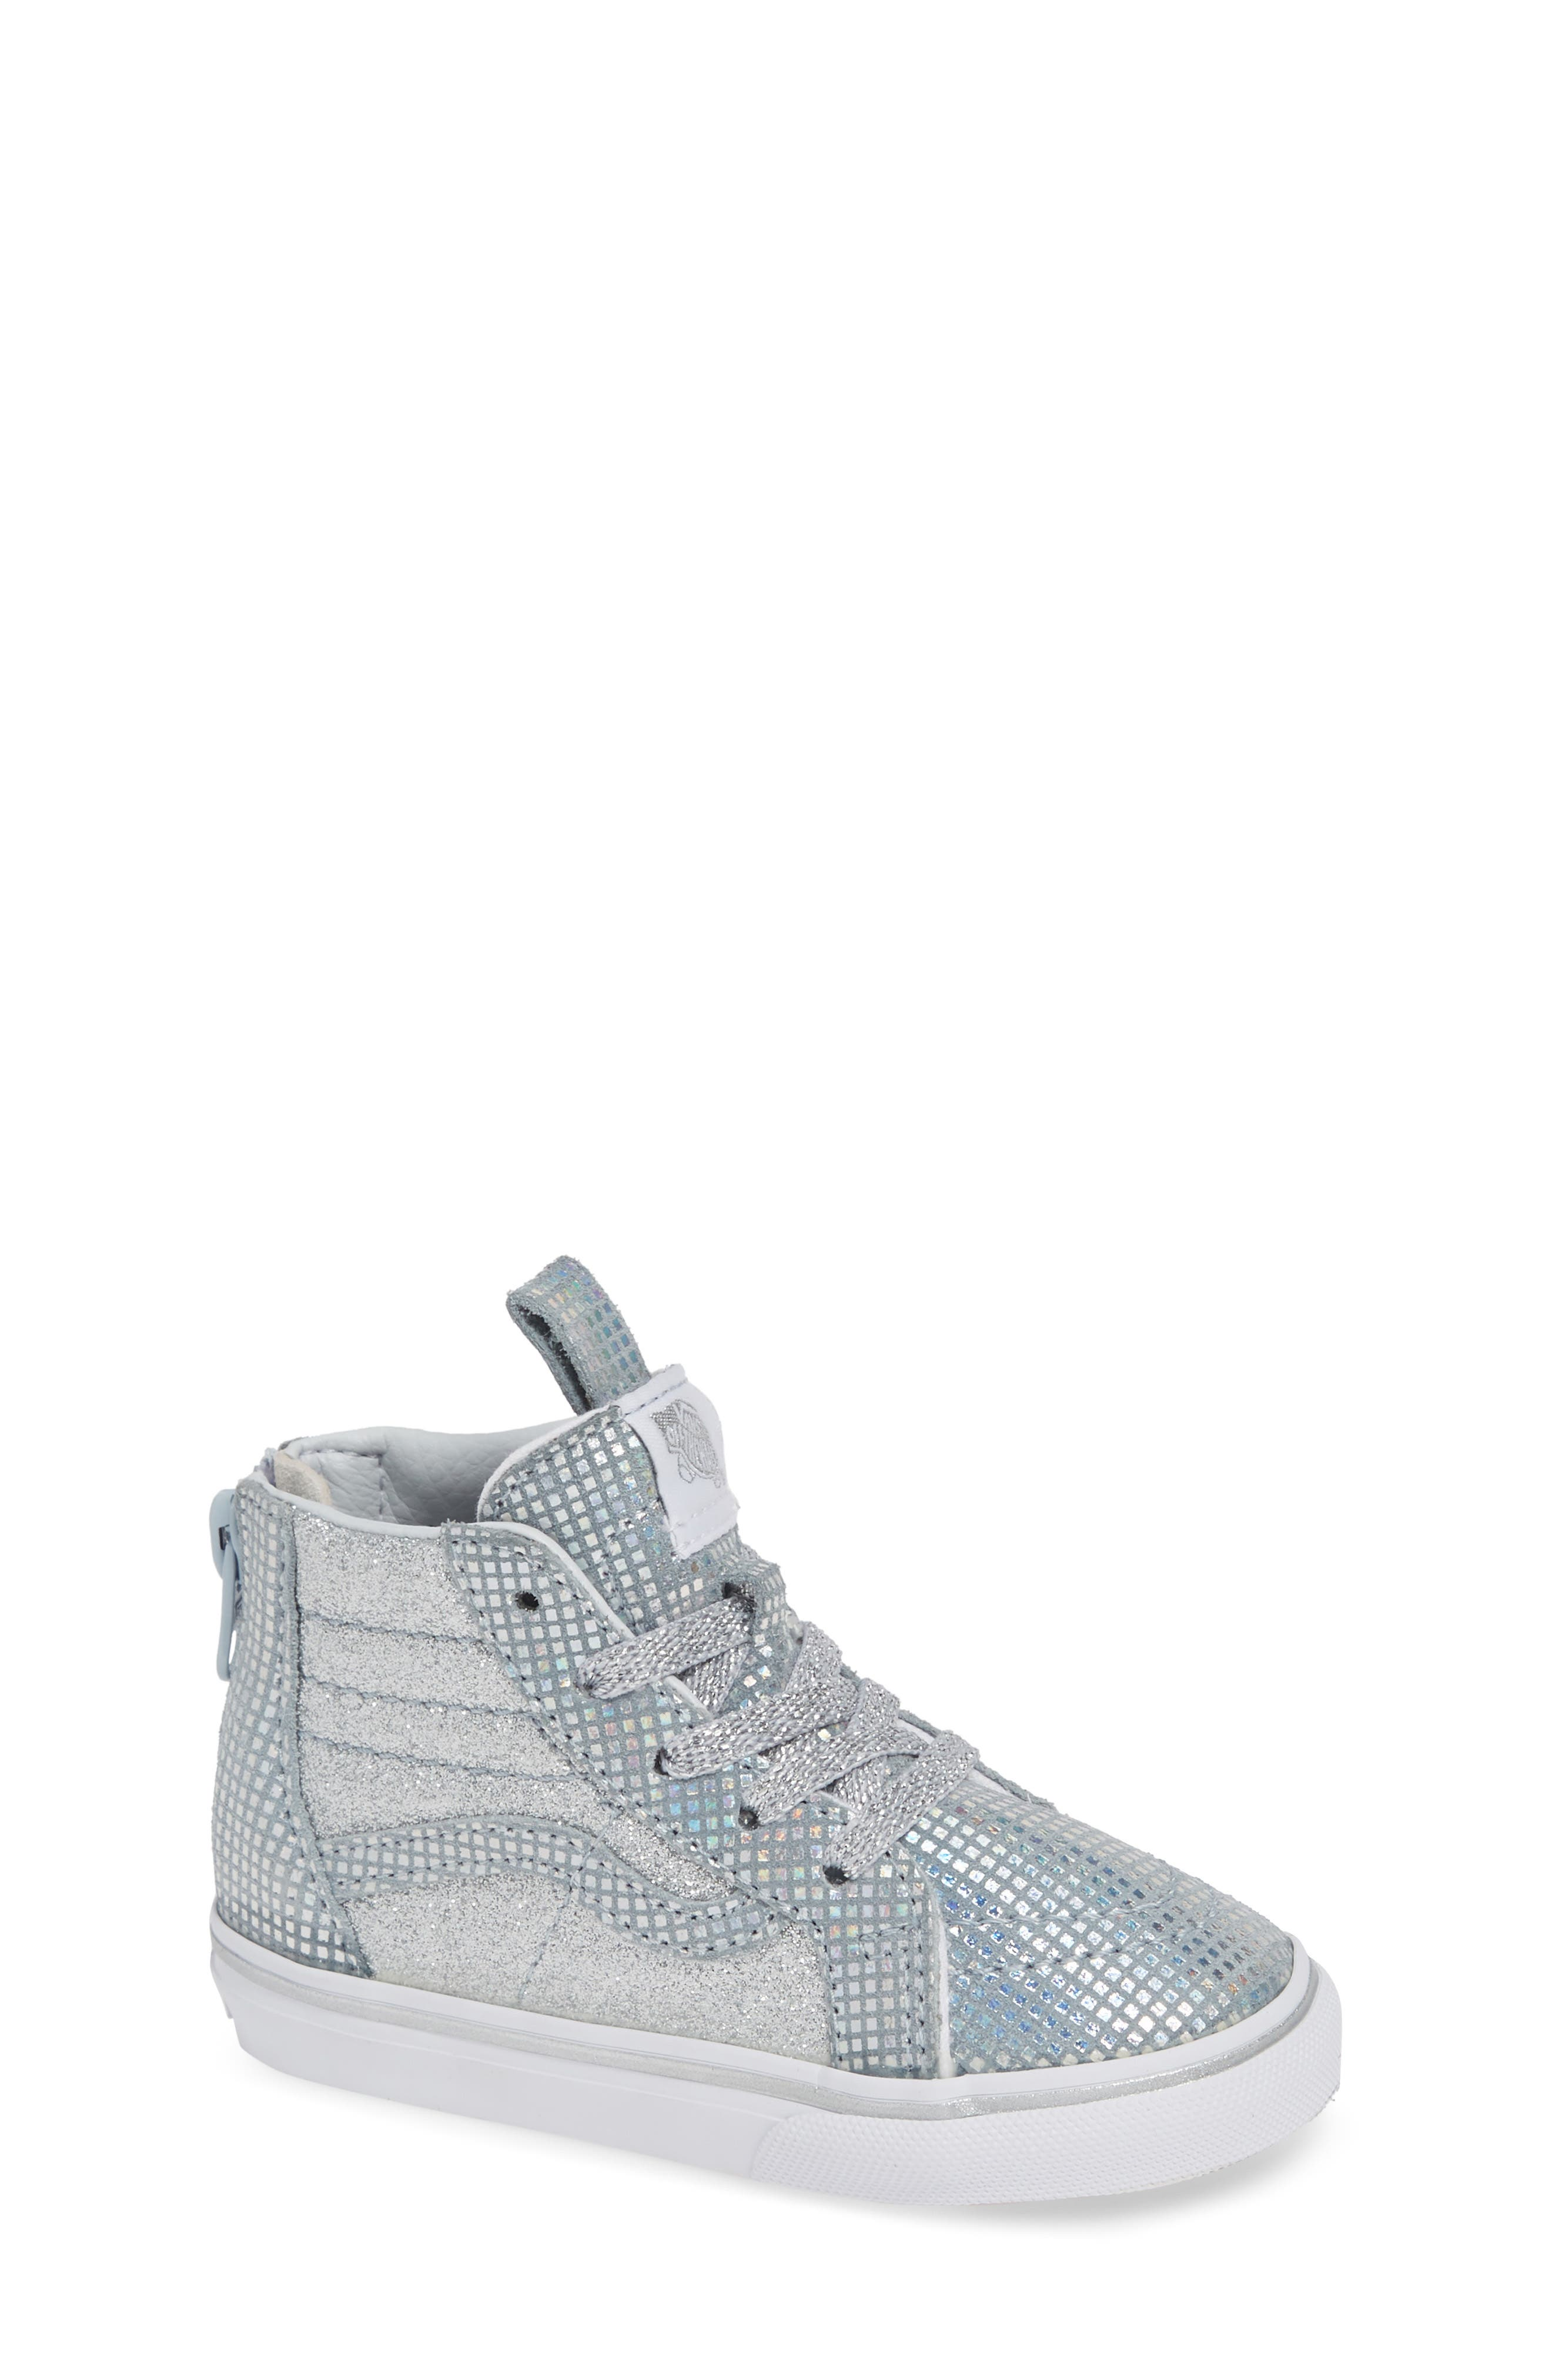 SK8-Hi Zip Sparkle Sneaker,                             Main thumbnail 1, color,                             METALLIC SILVER GLITTER